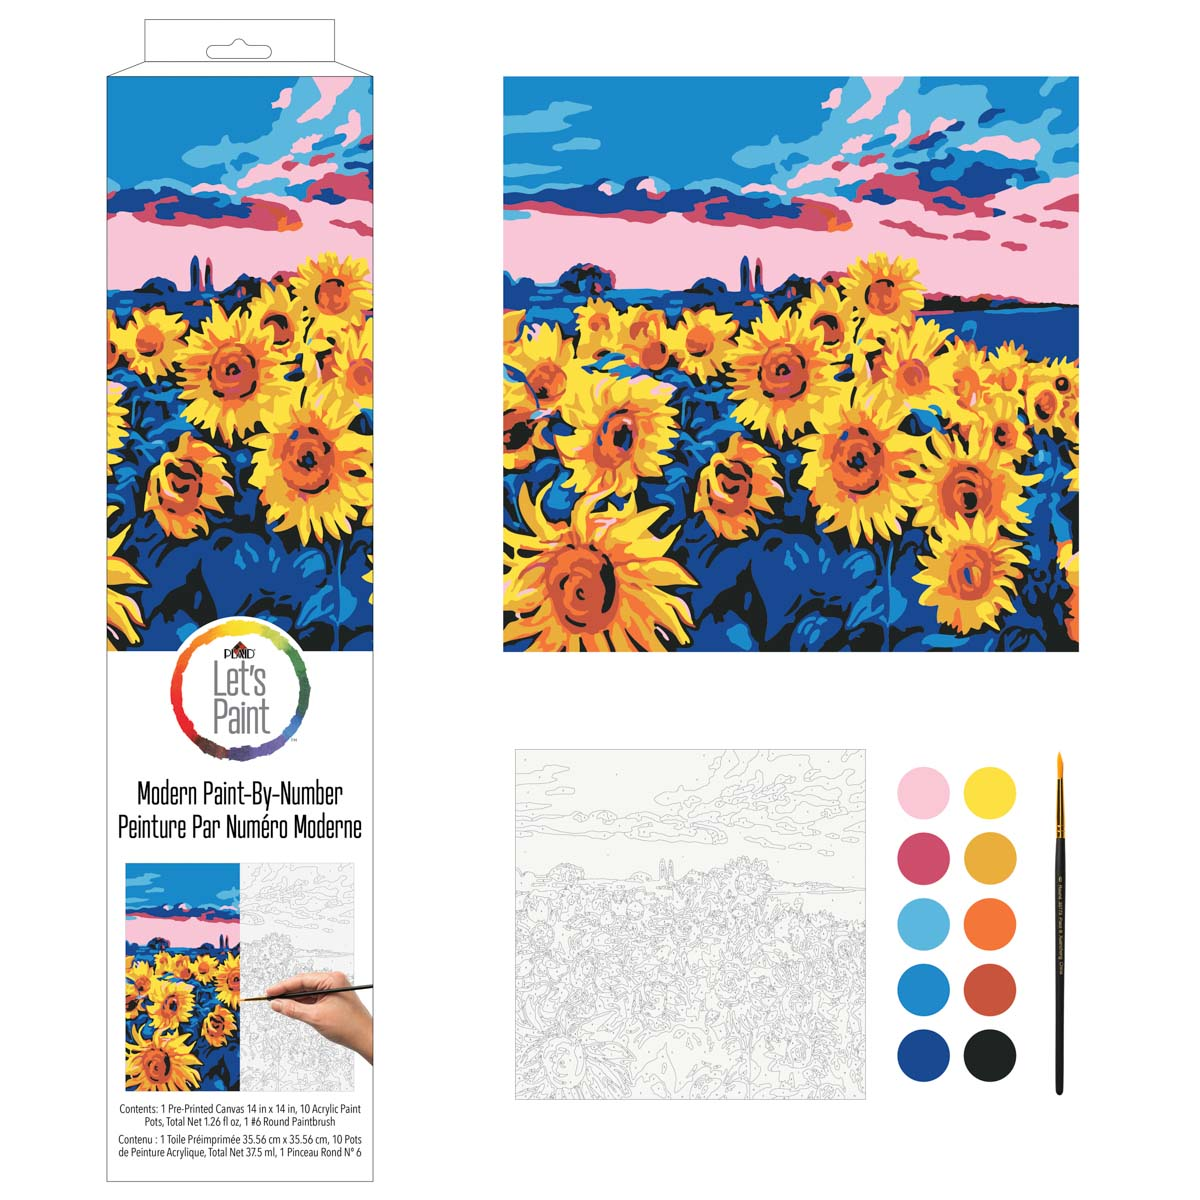 Plaid ® Let's Paint™ Modern Paint-by-Number - Sunflower Meadow - 17874